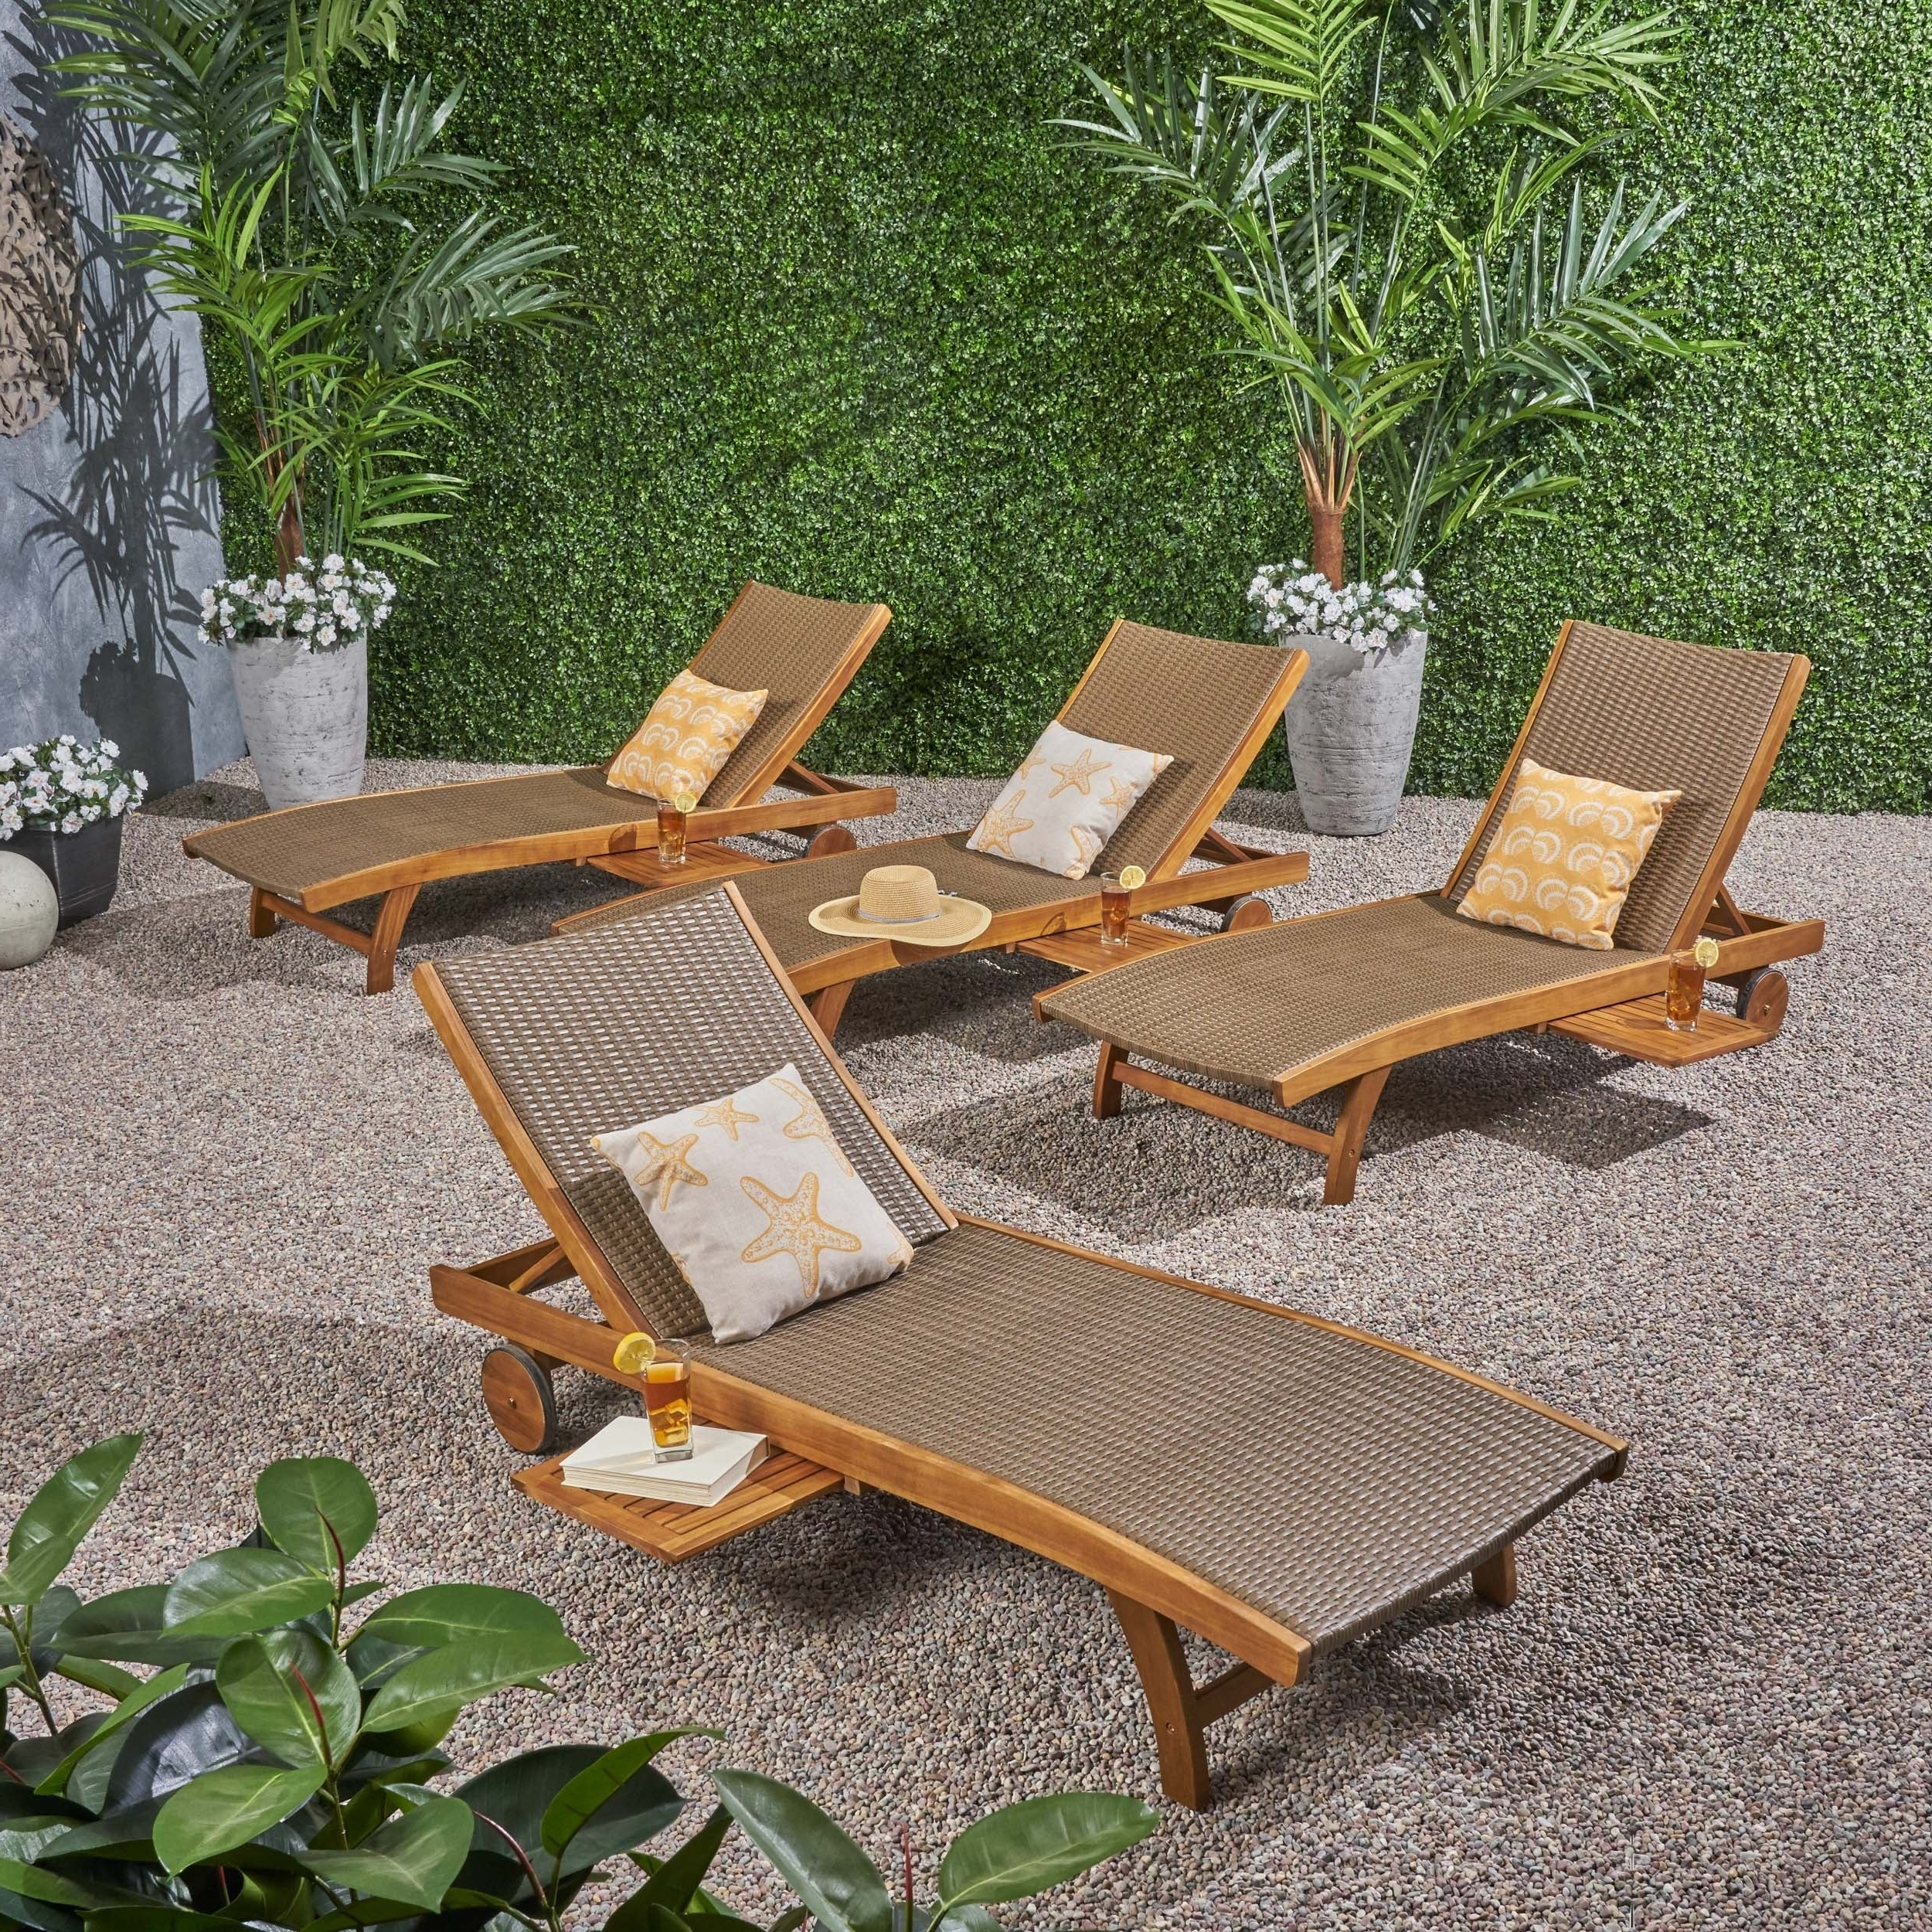 Fashionable Outdoor Rustic Acacia Wood Chaise Lounges With Wicker Seats In Banzai Outdoor Wicker And Wood Chaise Lounge With Pull Out Tray(Set Of 4)By  Christopher Knight Home (View 9 of 25)